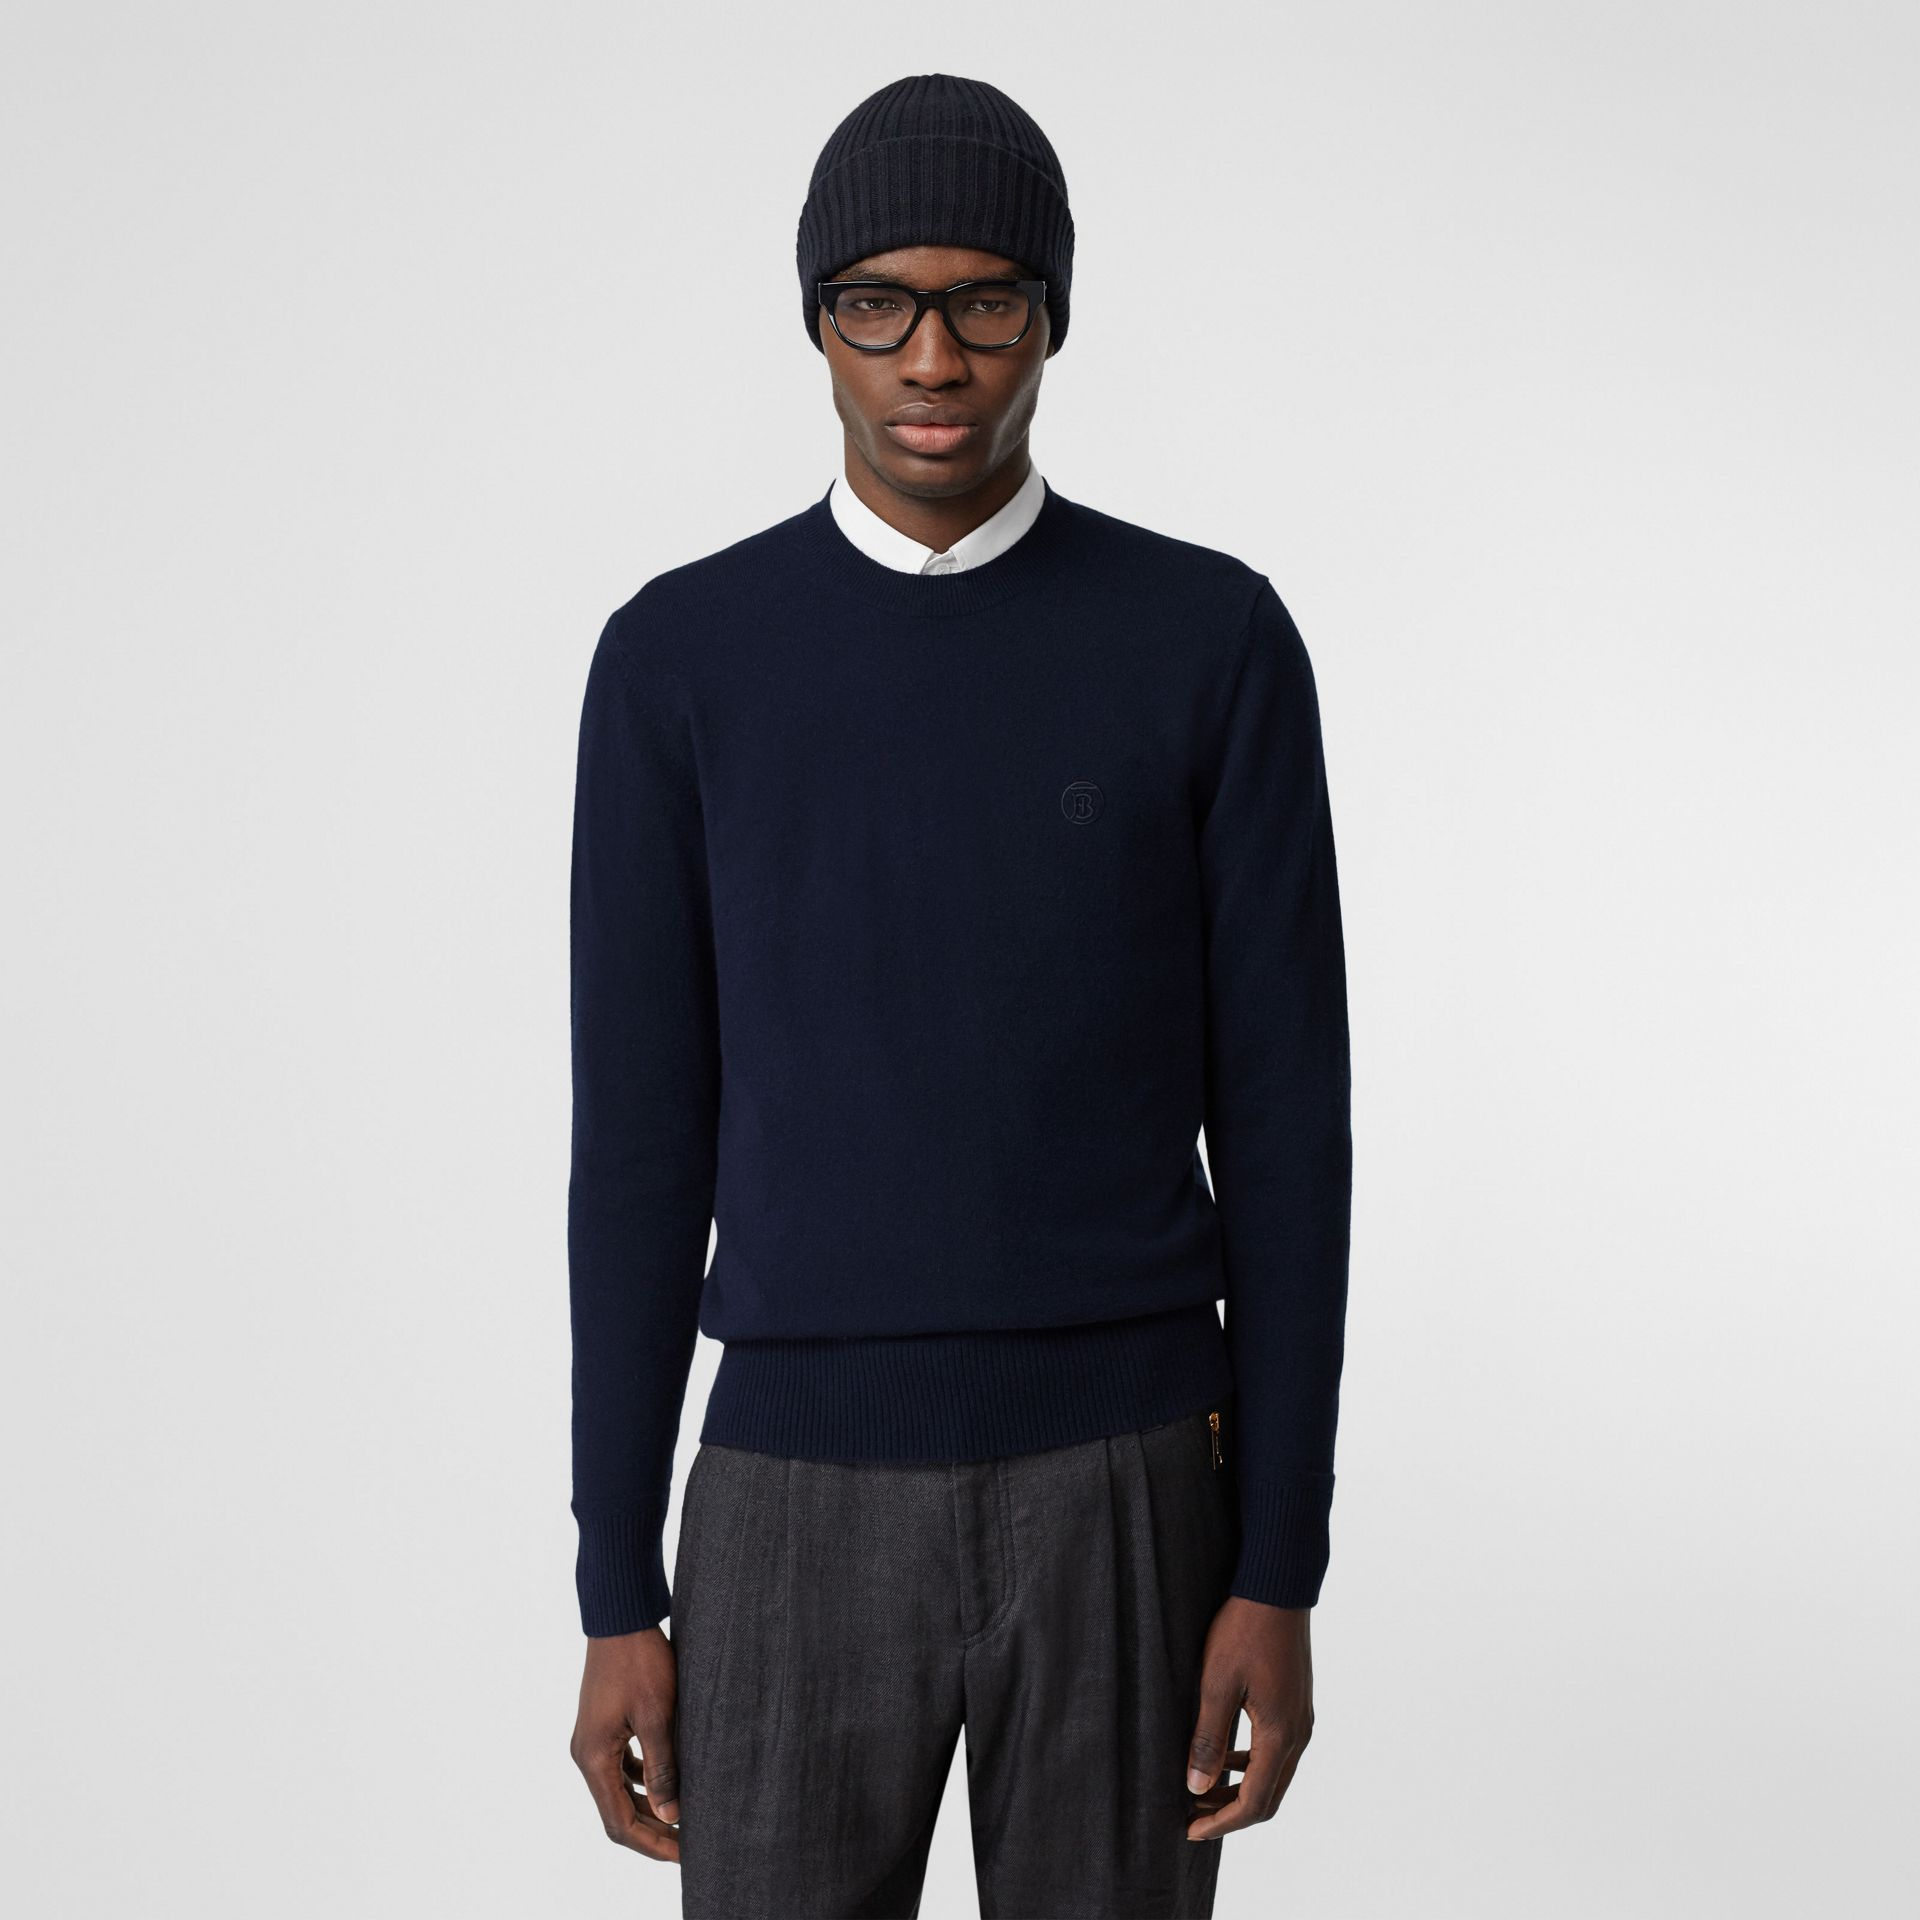 Monogram Motif Cashmere Sweater in Navy - Men | Burberry - gallery image 4